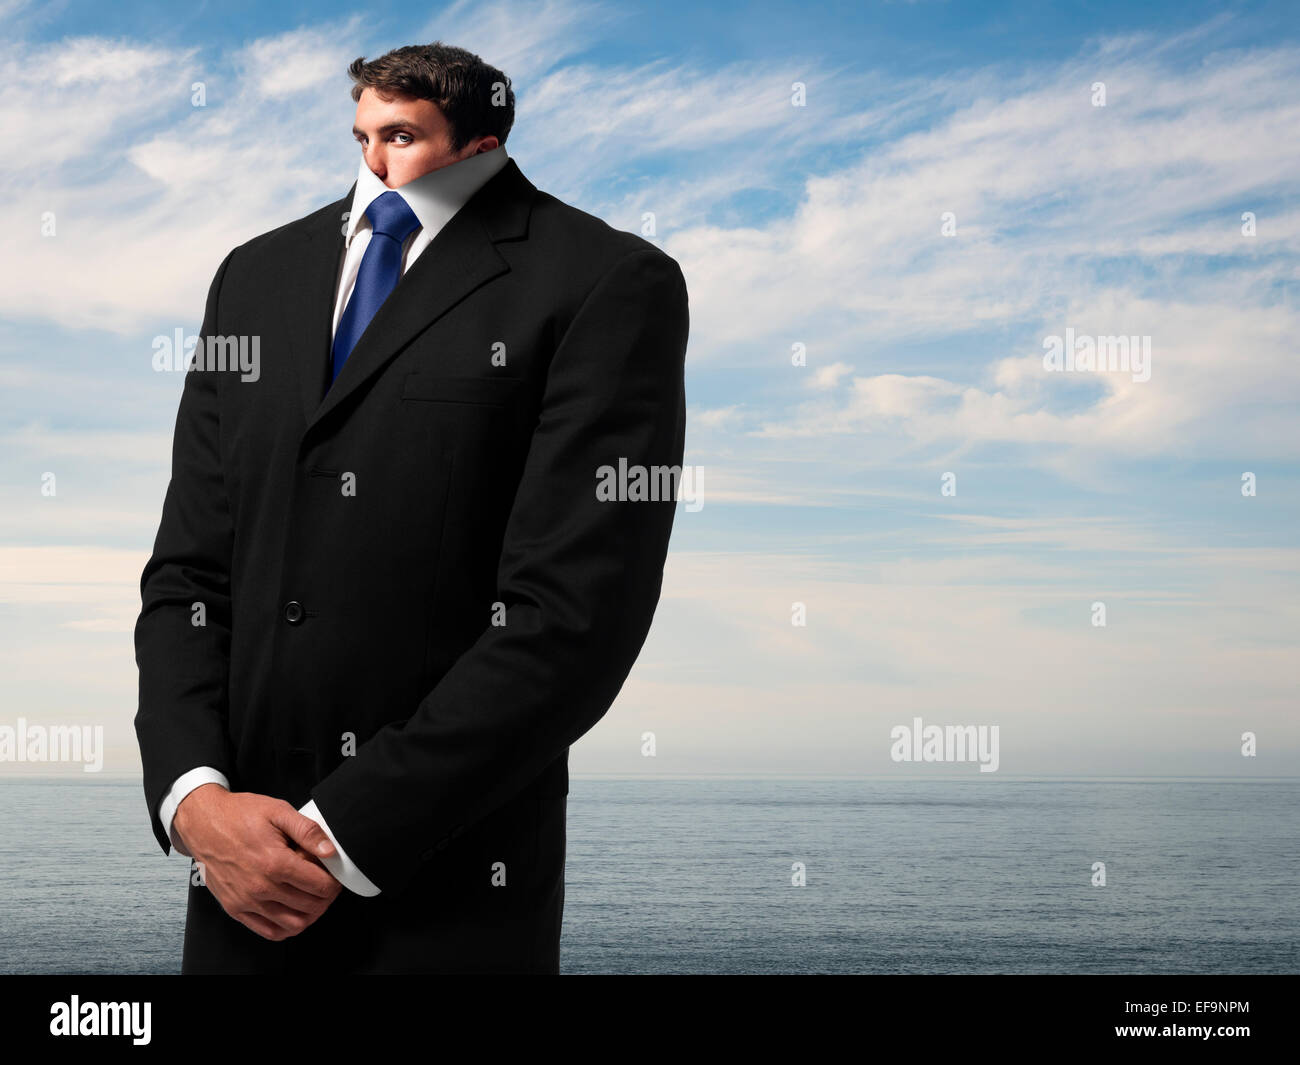 Fantasy image of man in business suit near ocean whose head has shrunk down into his body - Stock Image